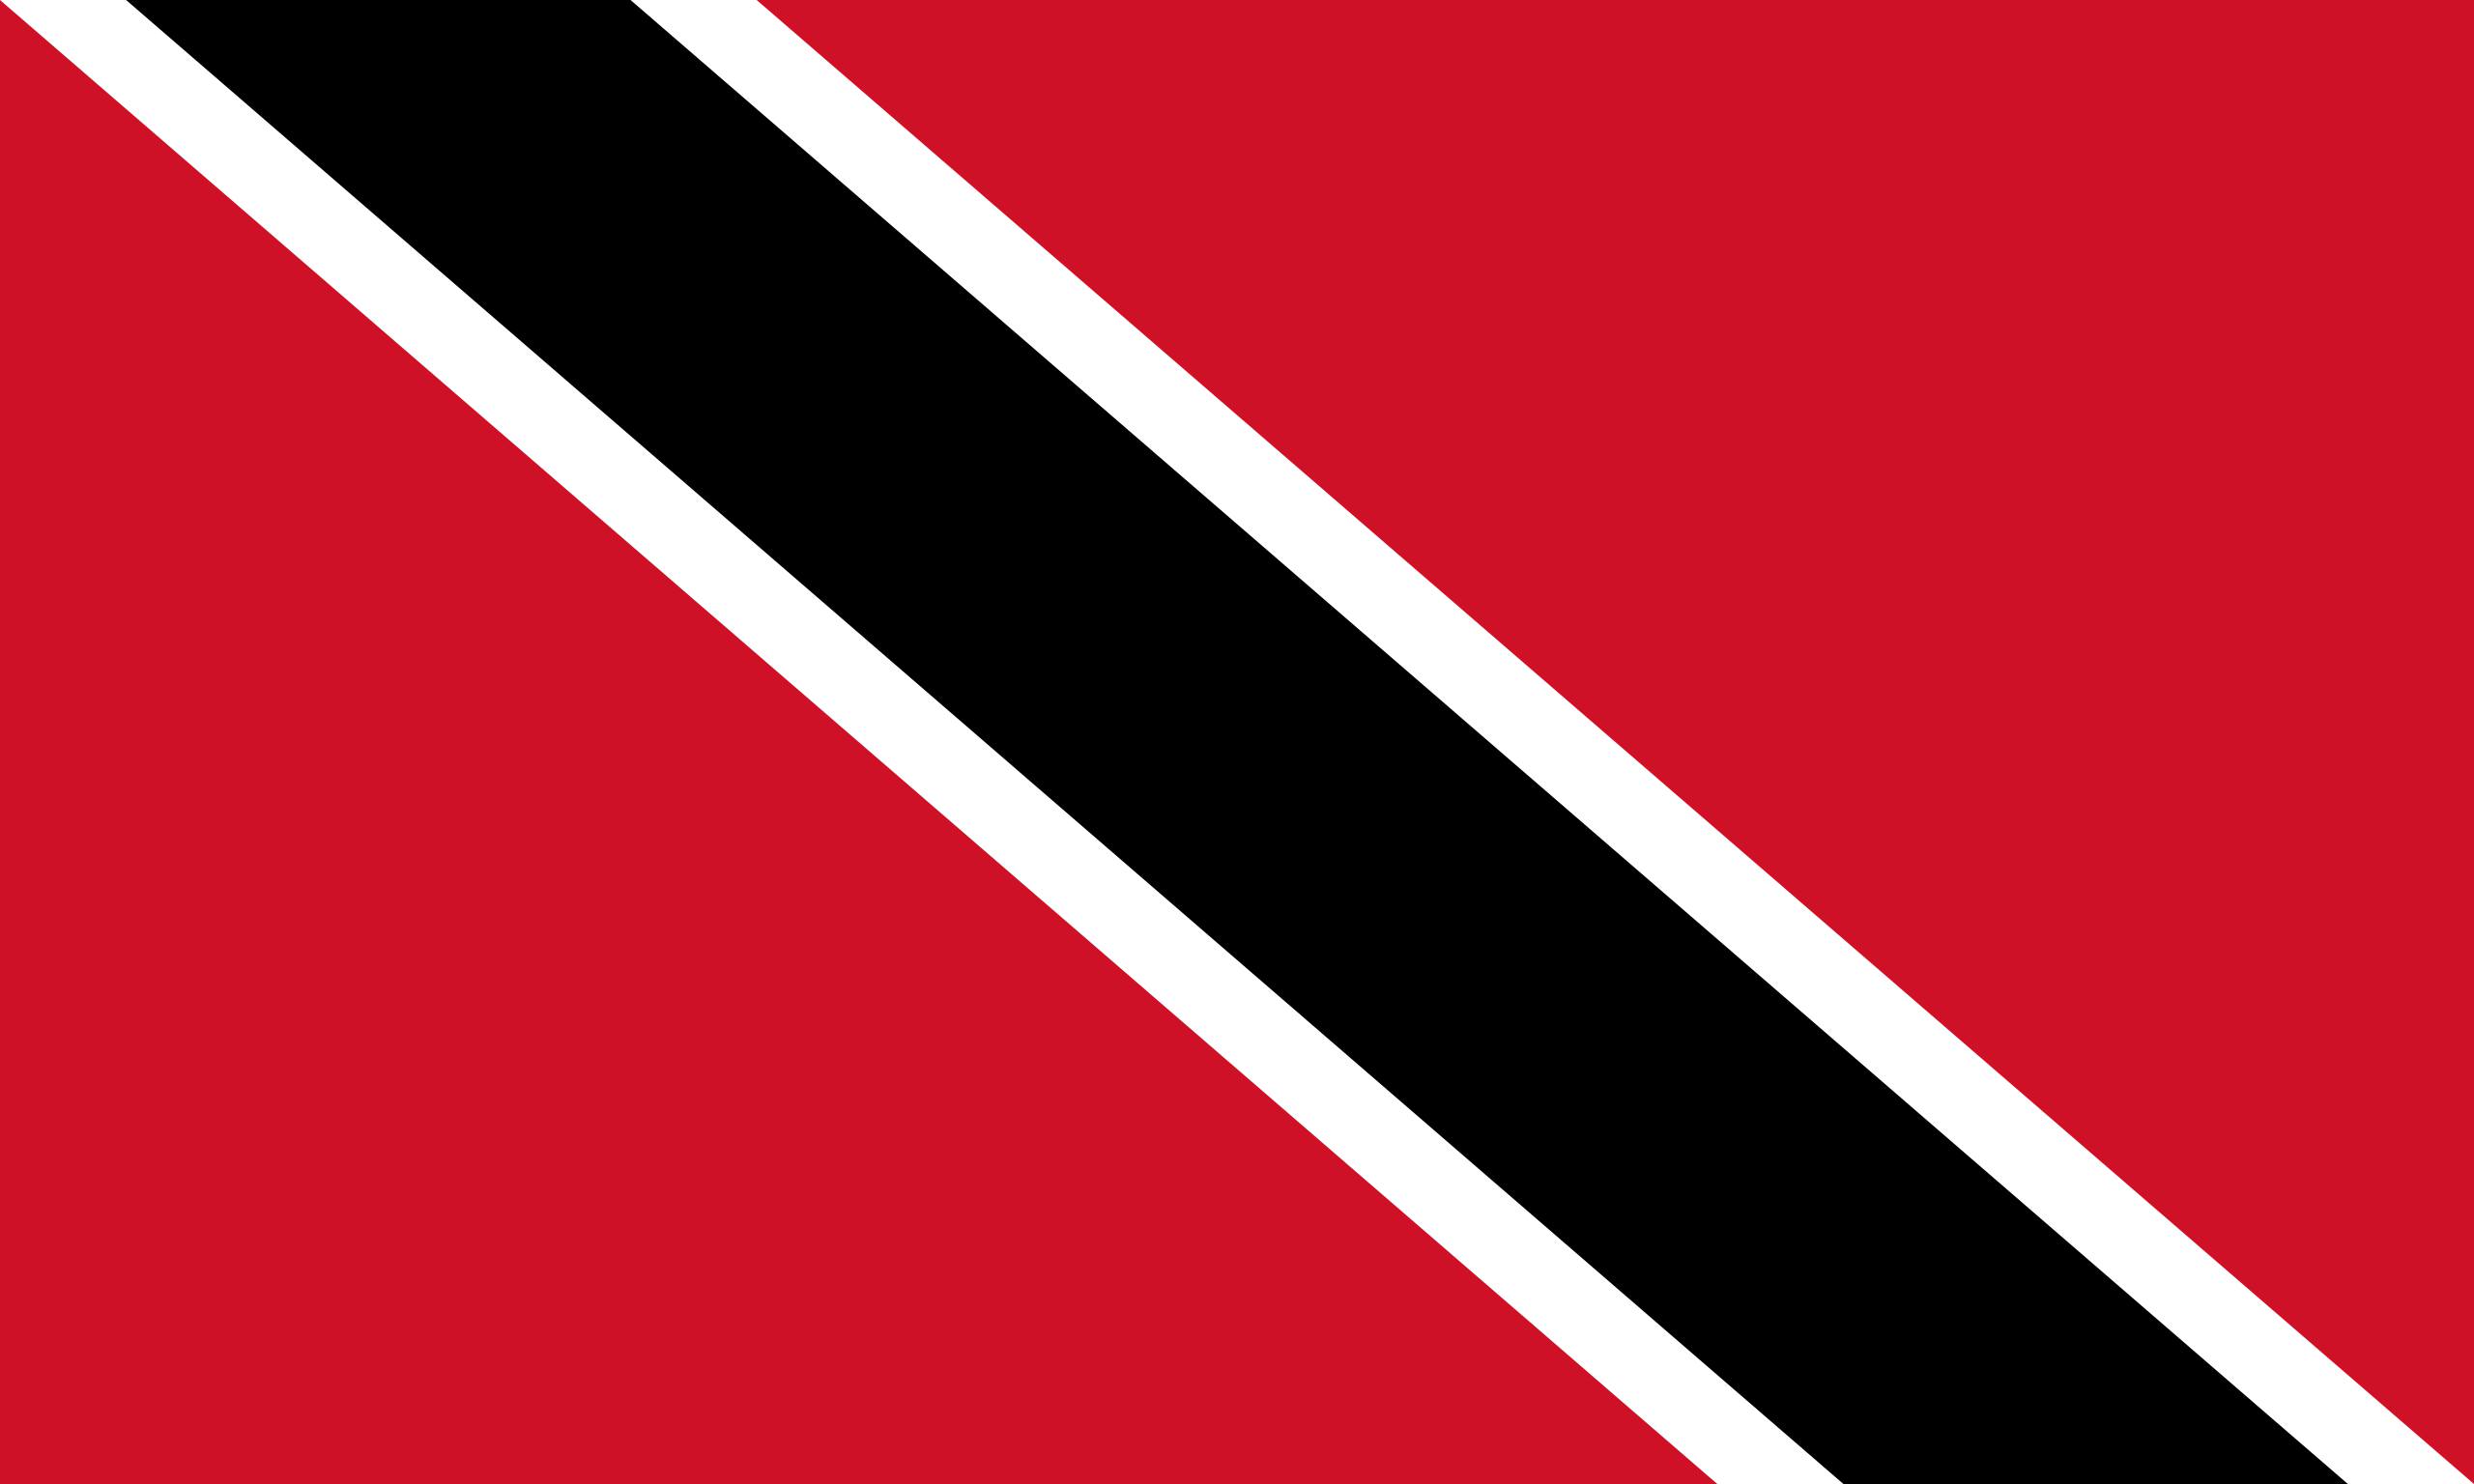 . Trinidad and Tobago vector